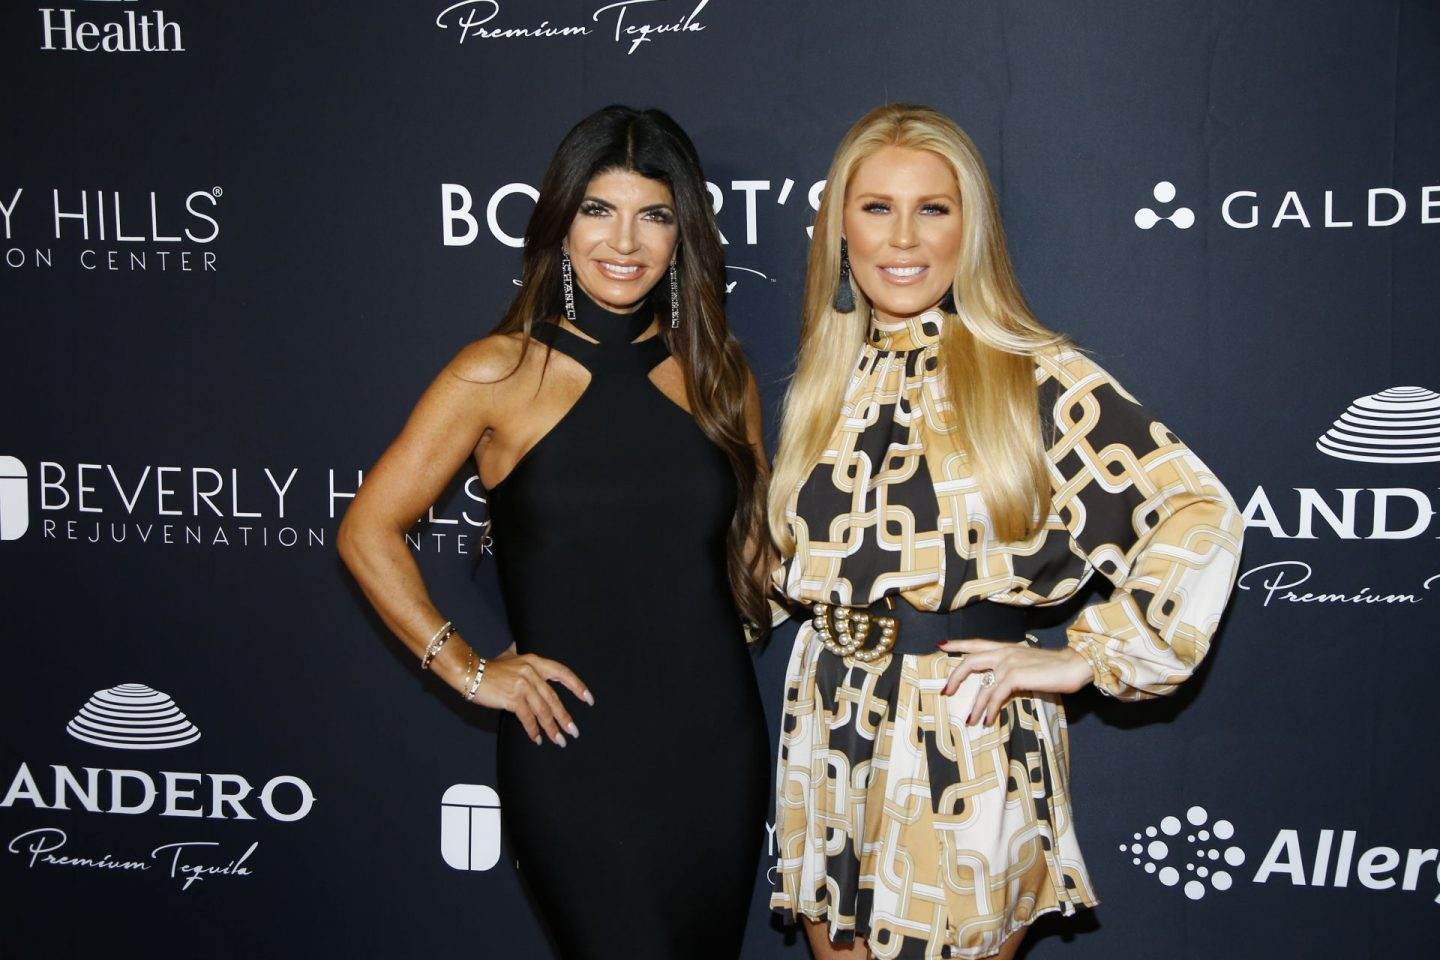 Real Housewives Teresa Giudice and Gretchen Rossi